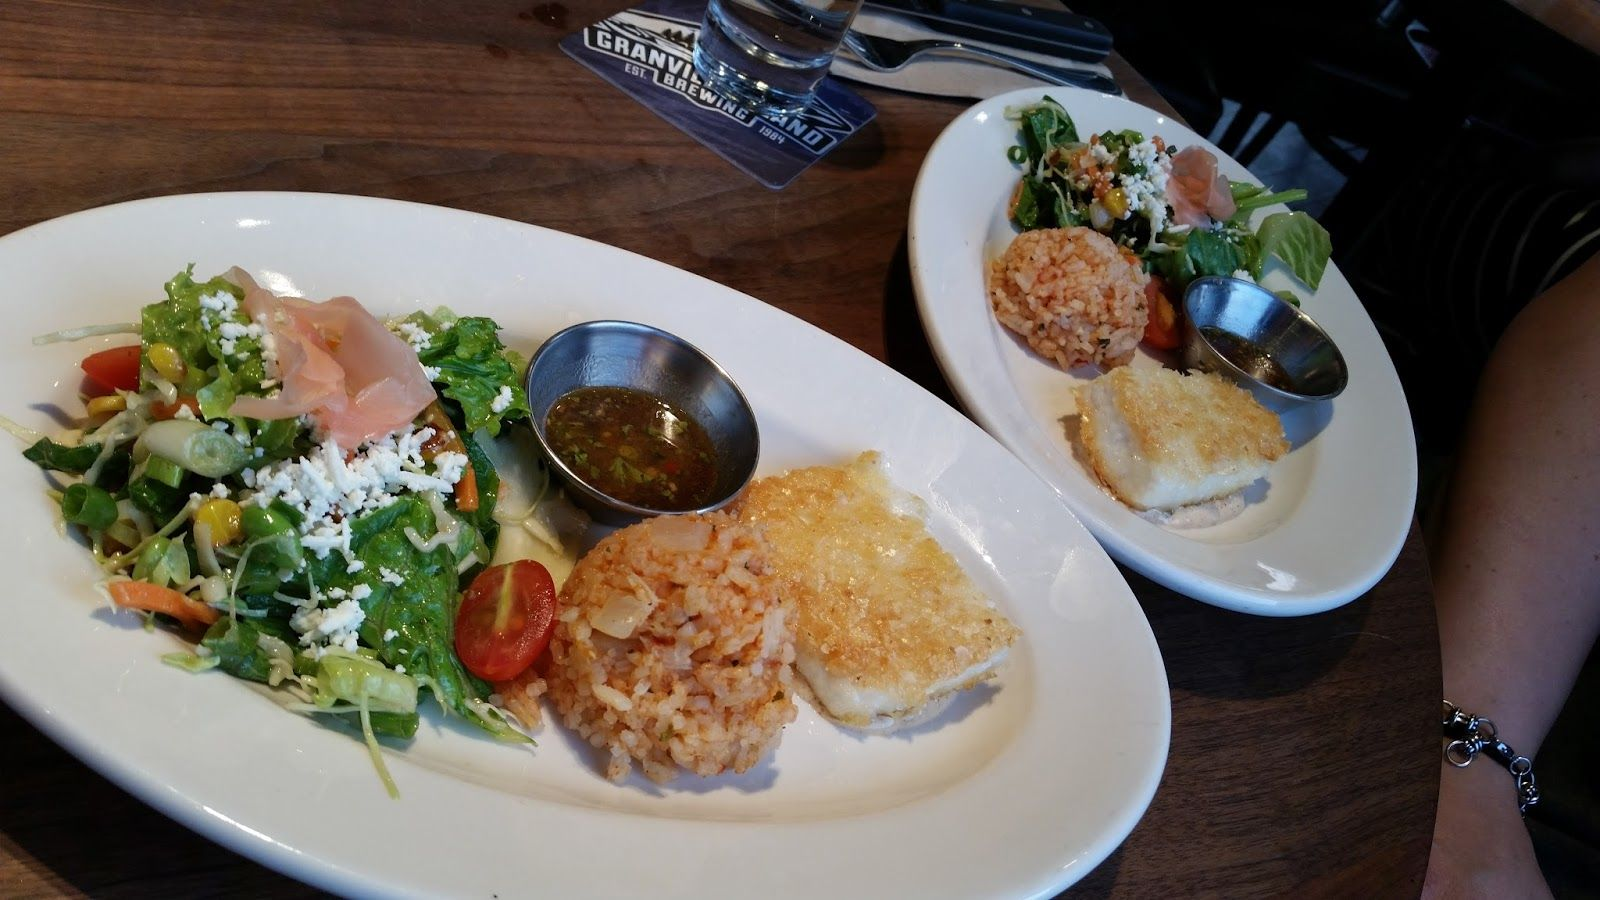 Browns Socialhouse Gluten Free Menu In Edmonton Gluten Free Menu Gluten Free Restaurants Gluten Free Eating